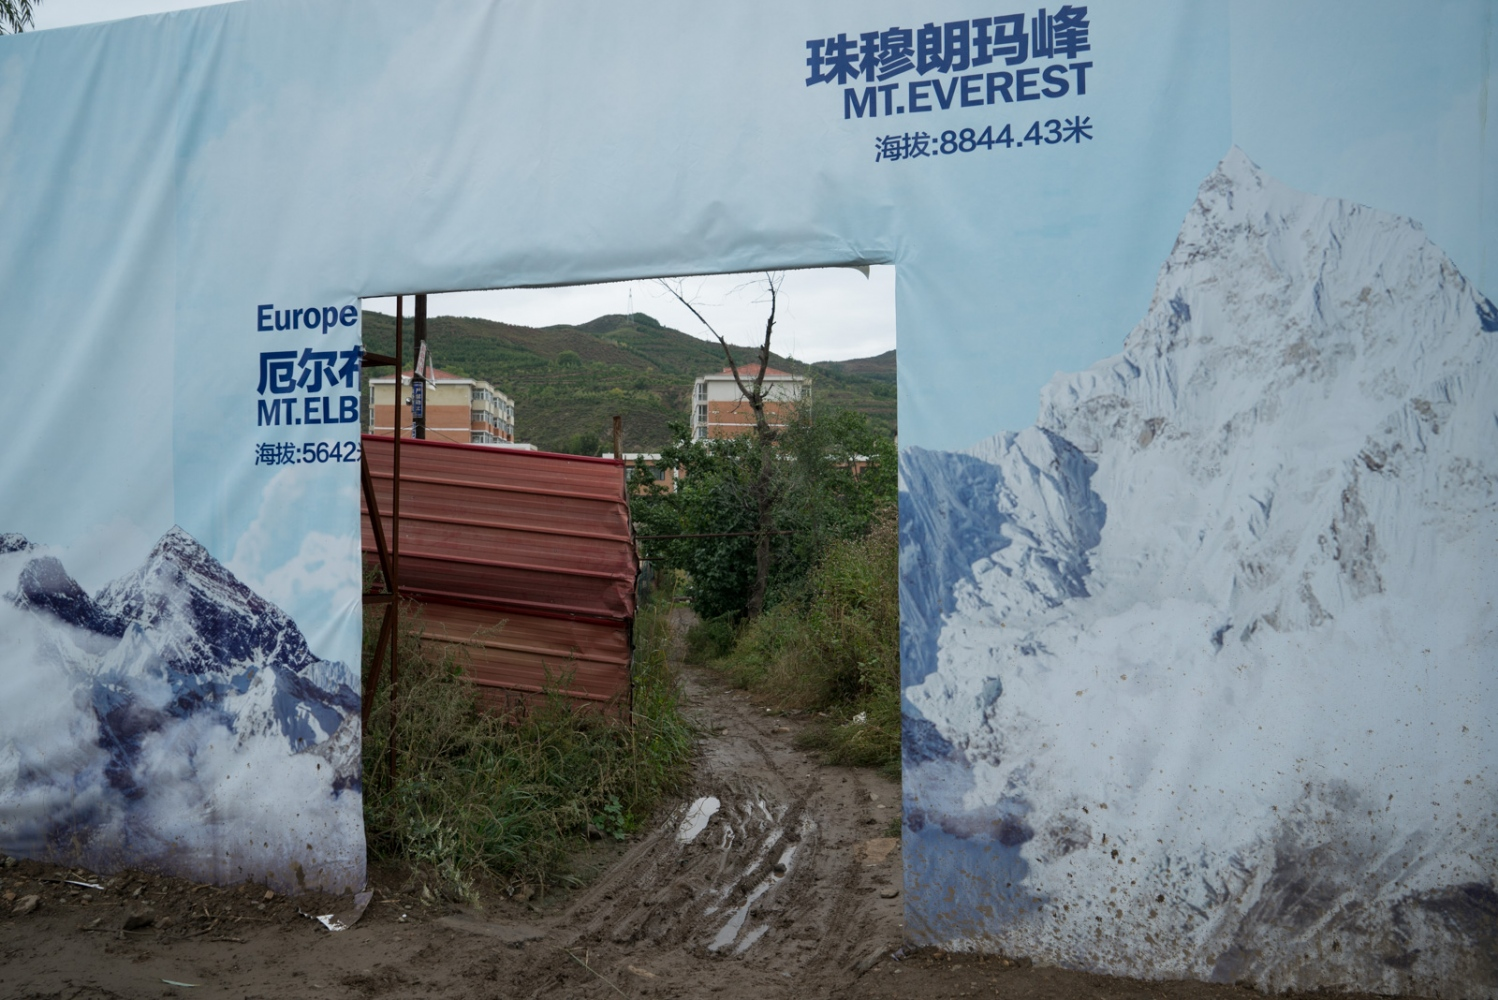 Huge board covered by pictures of the world's highest mountains in Chongli County.